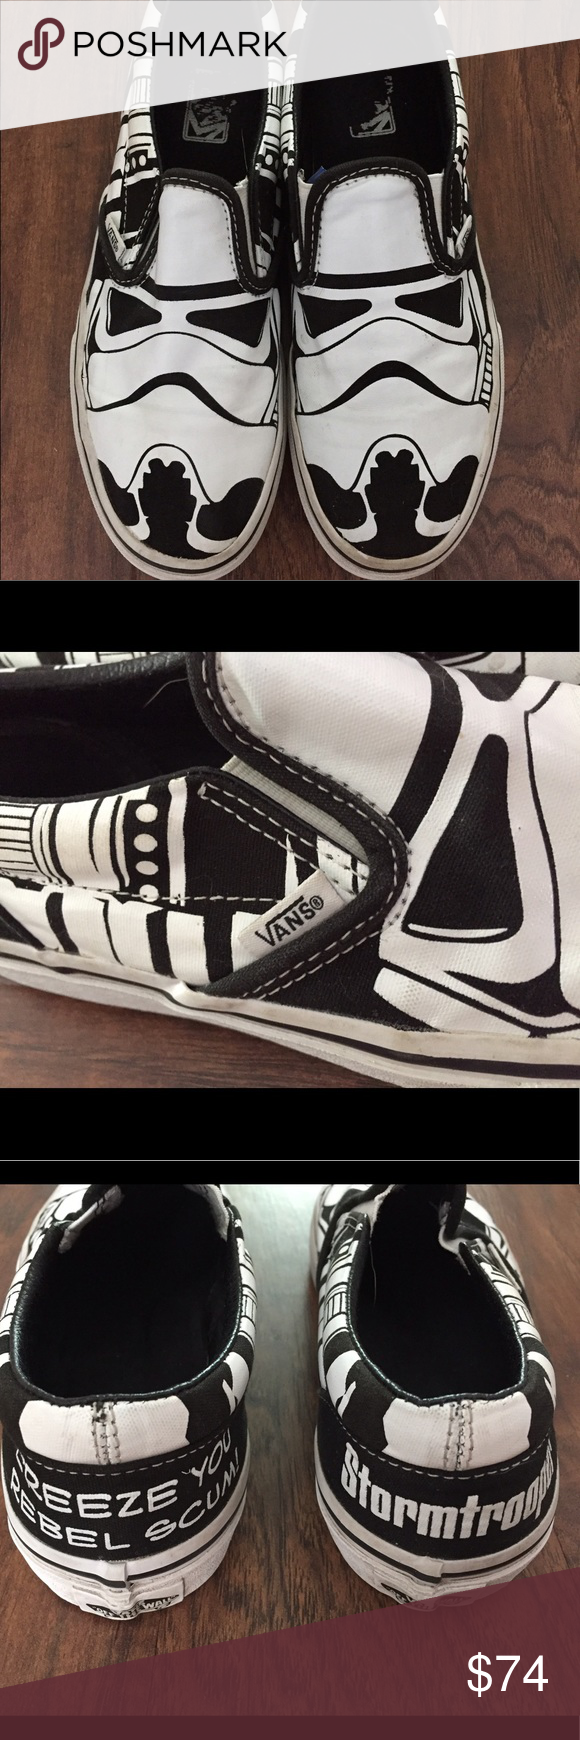 a355d2d973bf65 VANS Limited Edition Star Wars Stormtrooper Shoes Adorable and limited  edition pair of Stormtrooper shoes by